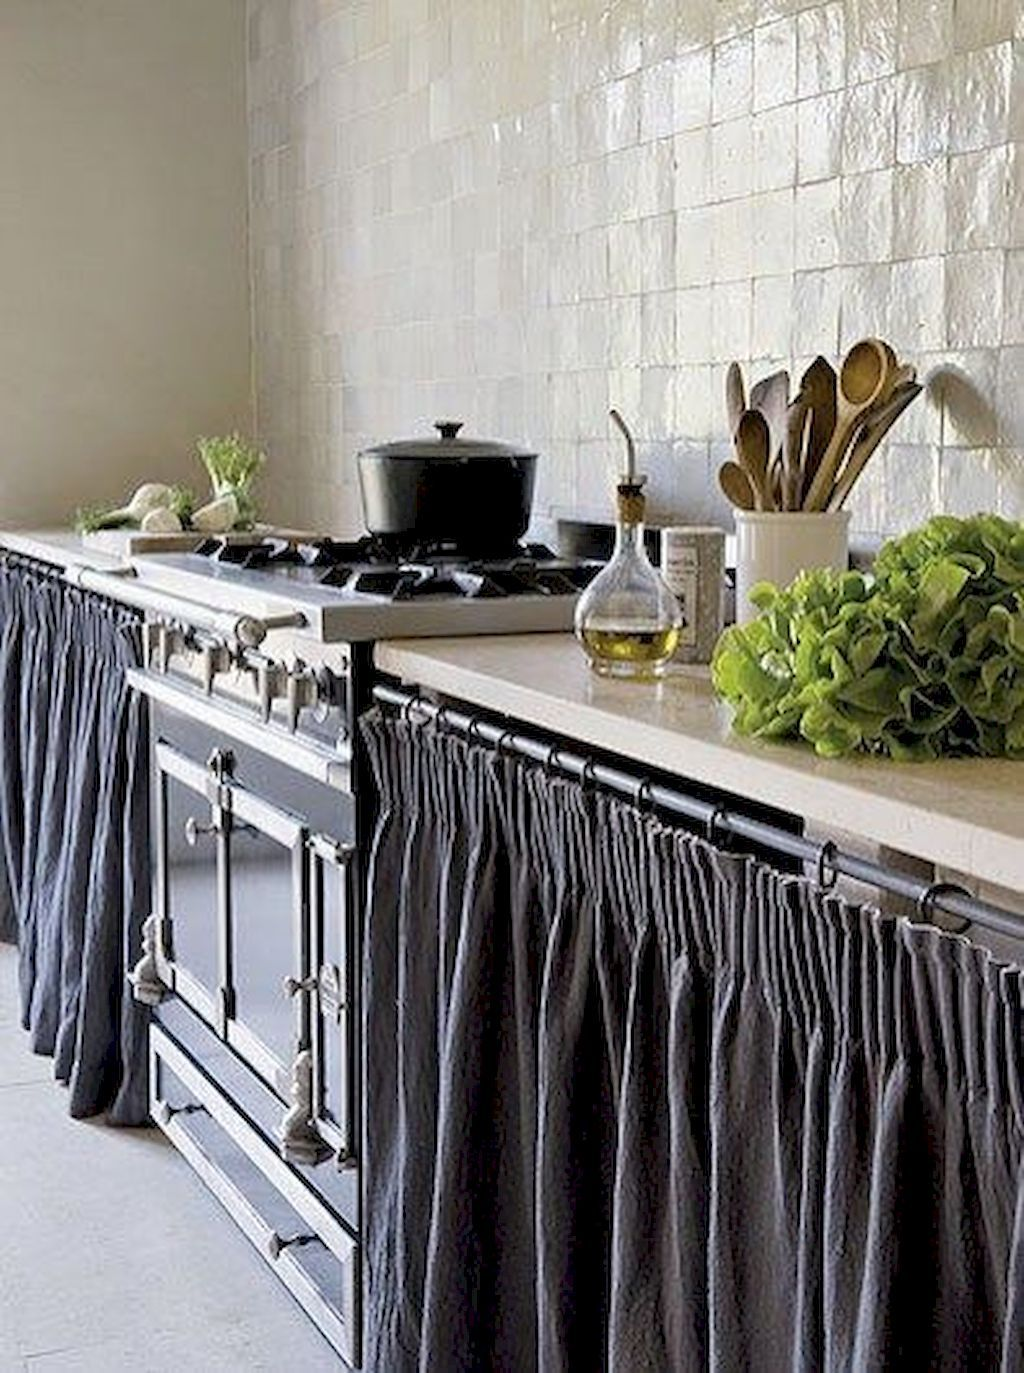 Pin By Carrie Mcintosh On Kitchen In 2020 Country Kitchen Country Kitchen Designs French Country Kitchens